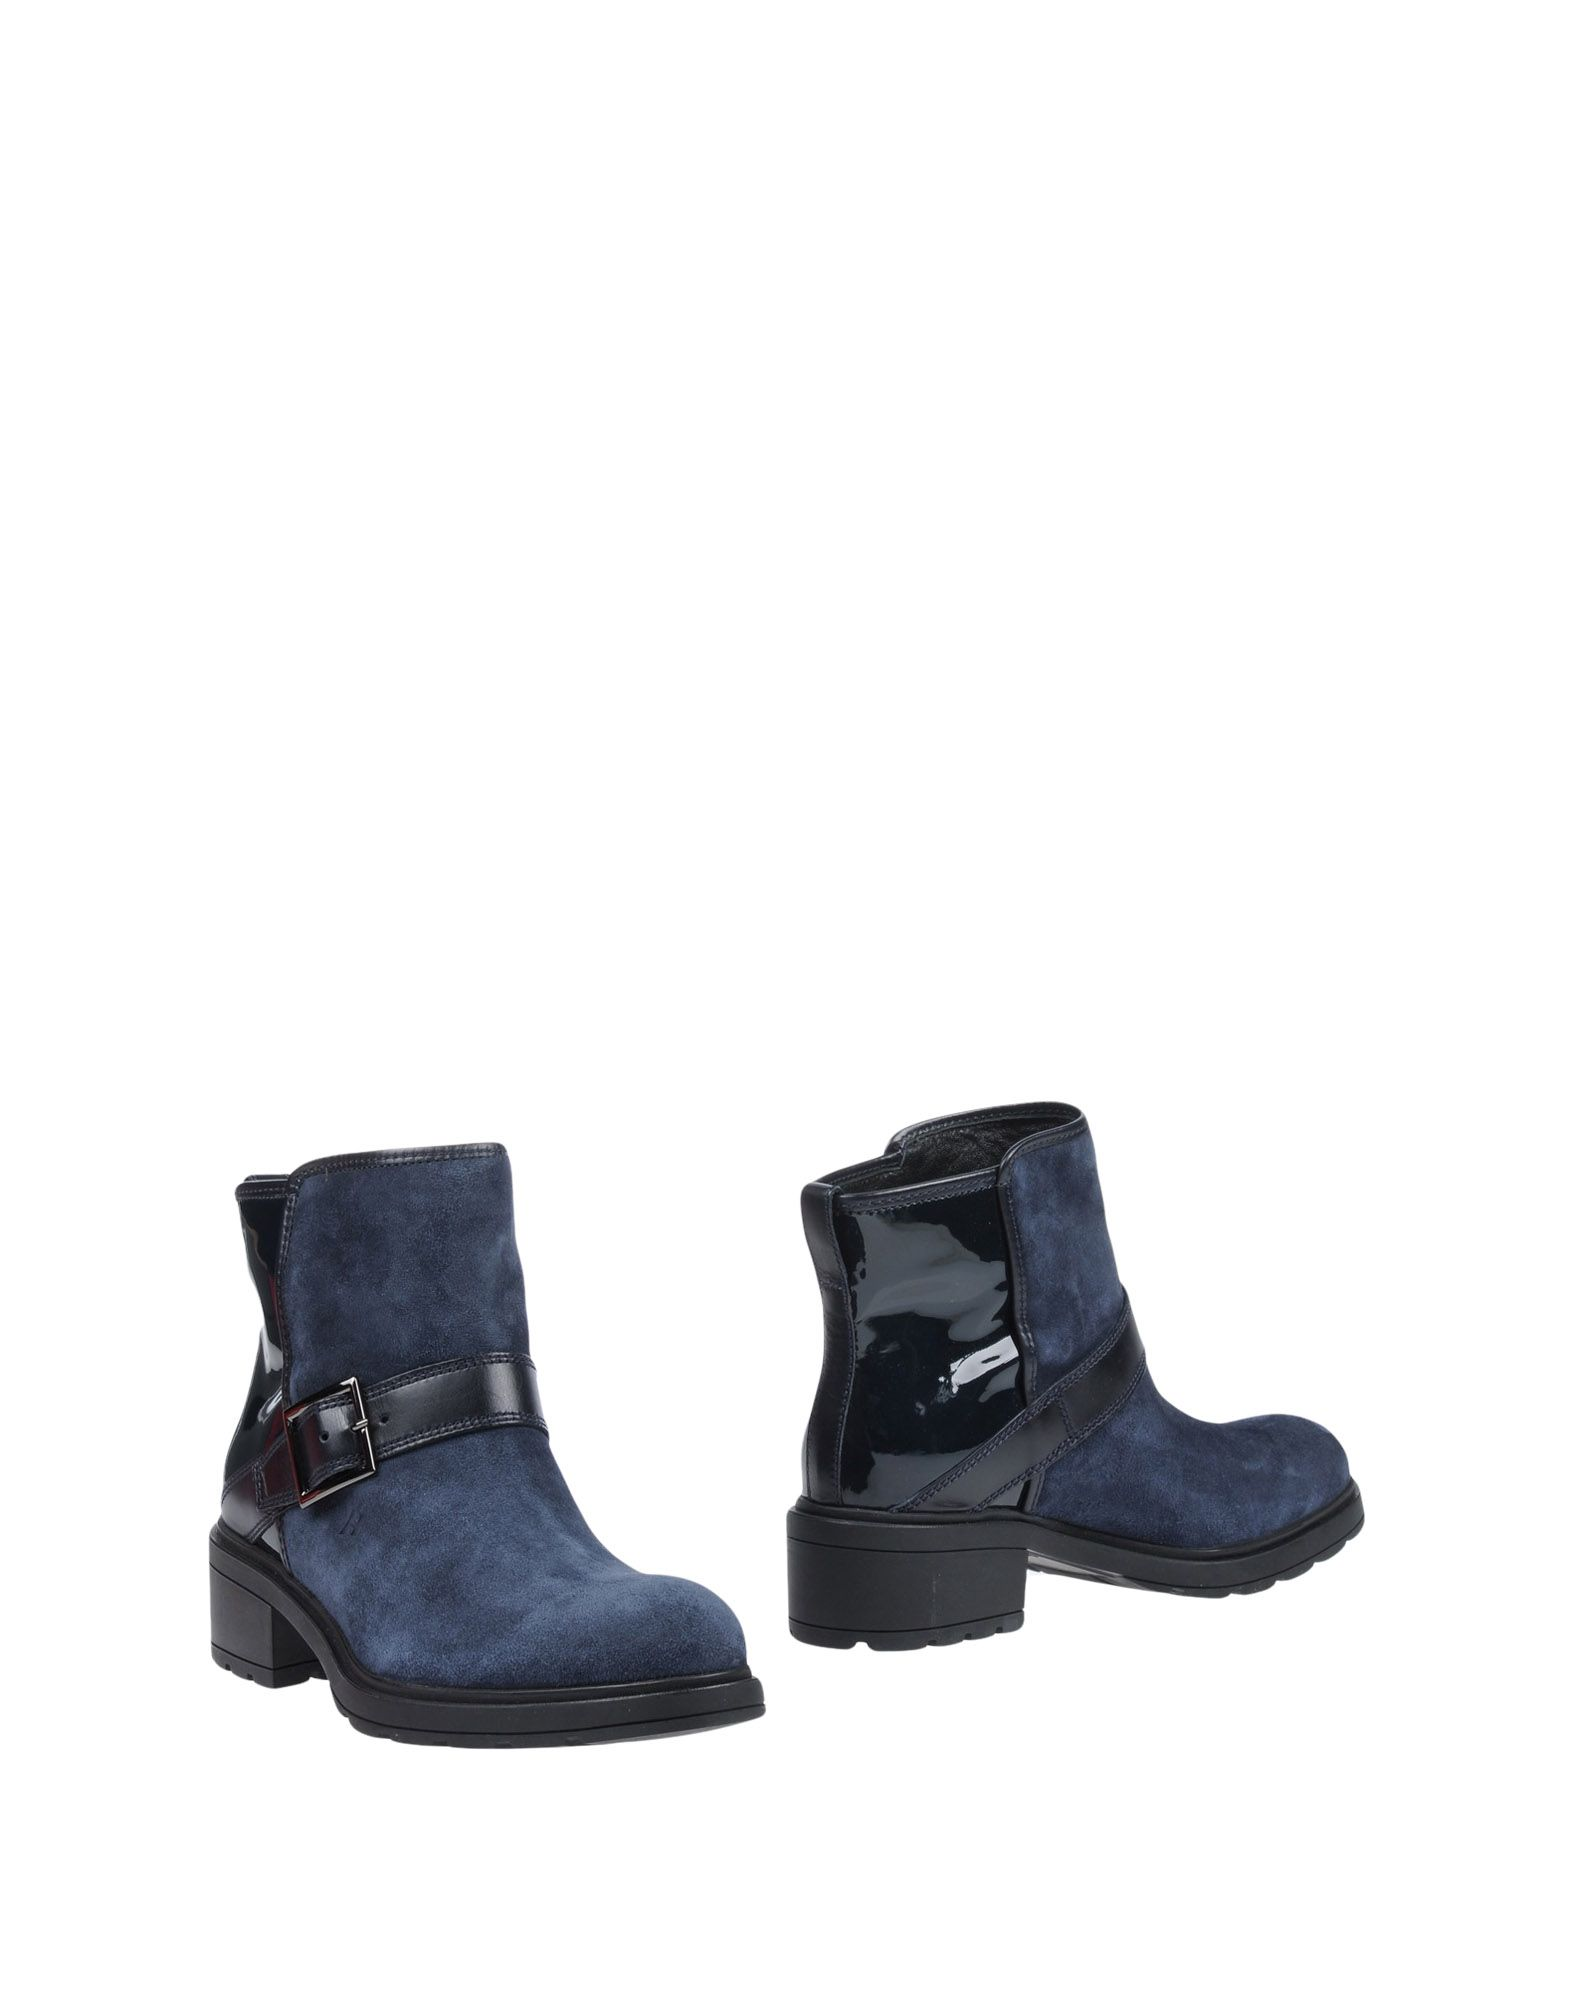 Hogan Hogan Ankle Boot - Women Hogan Hogan Ankle Boots online on  Canada - 11442244OM 25fbde